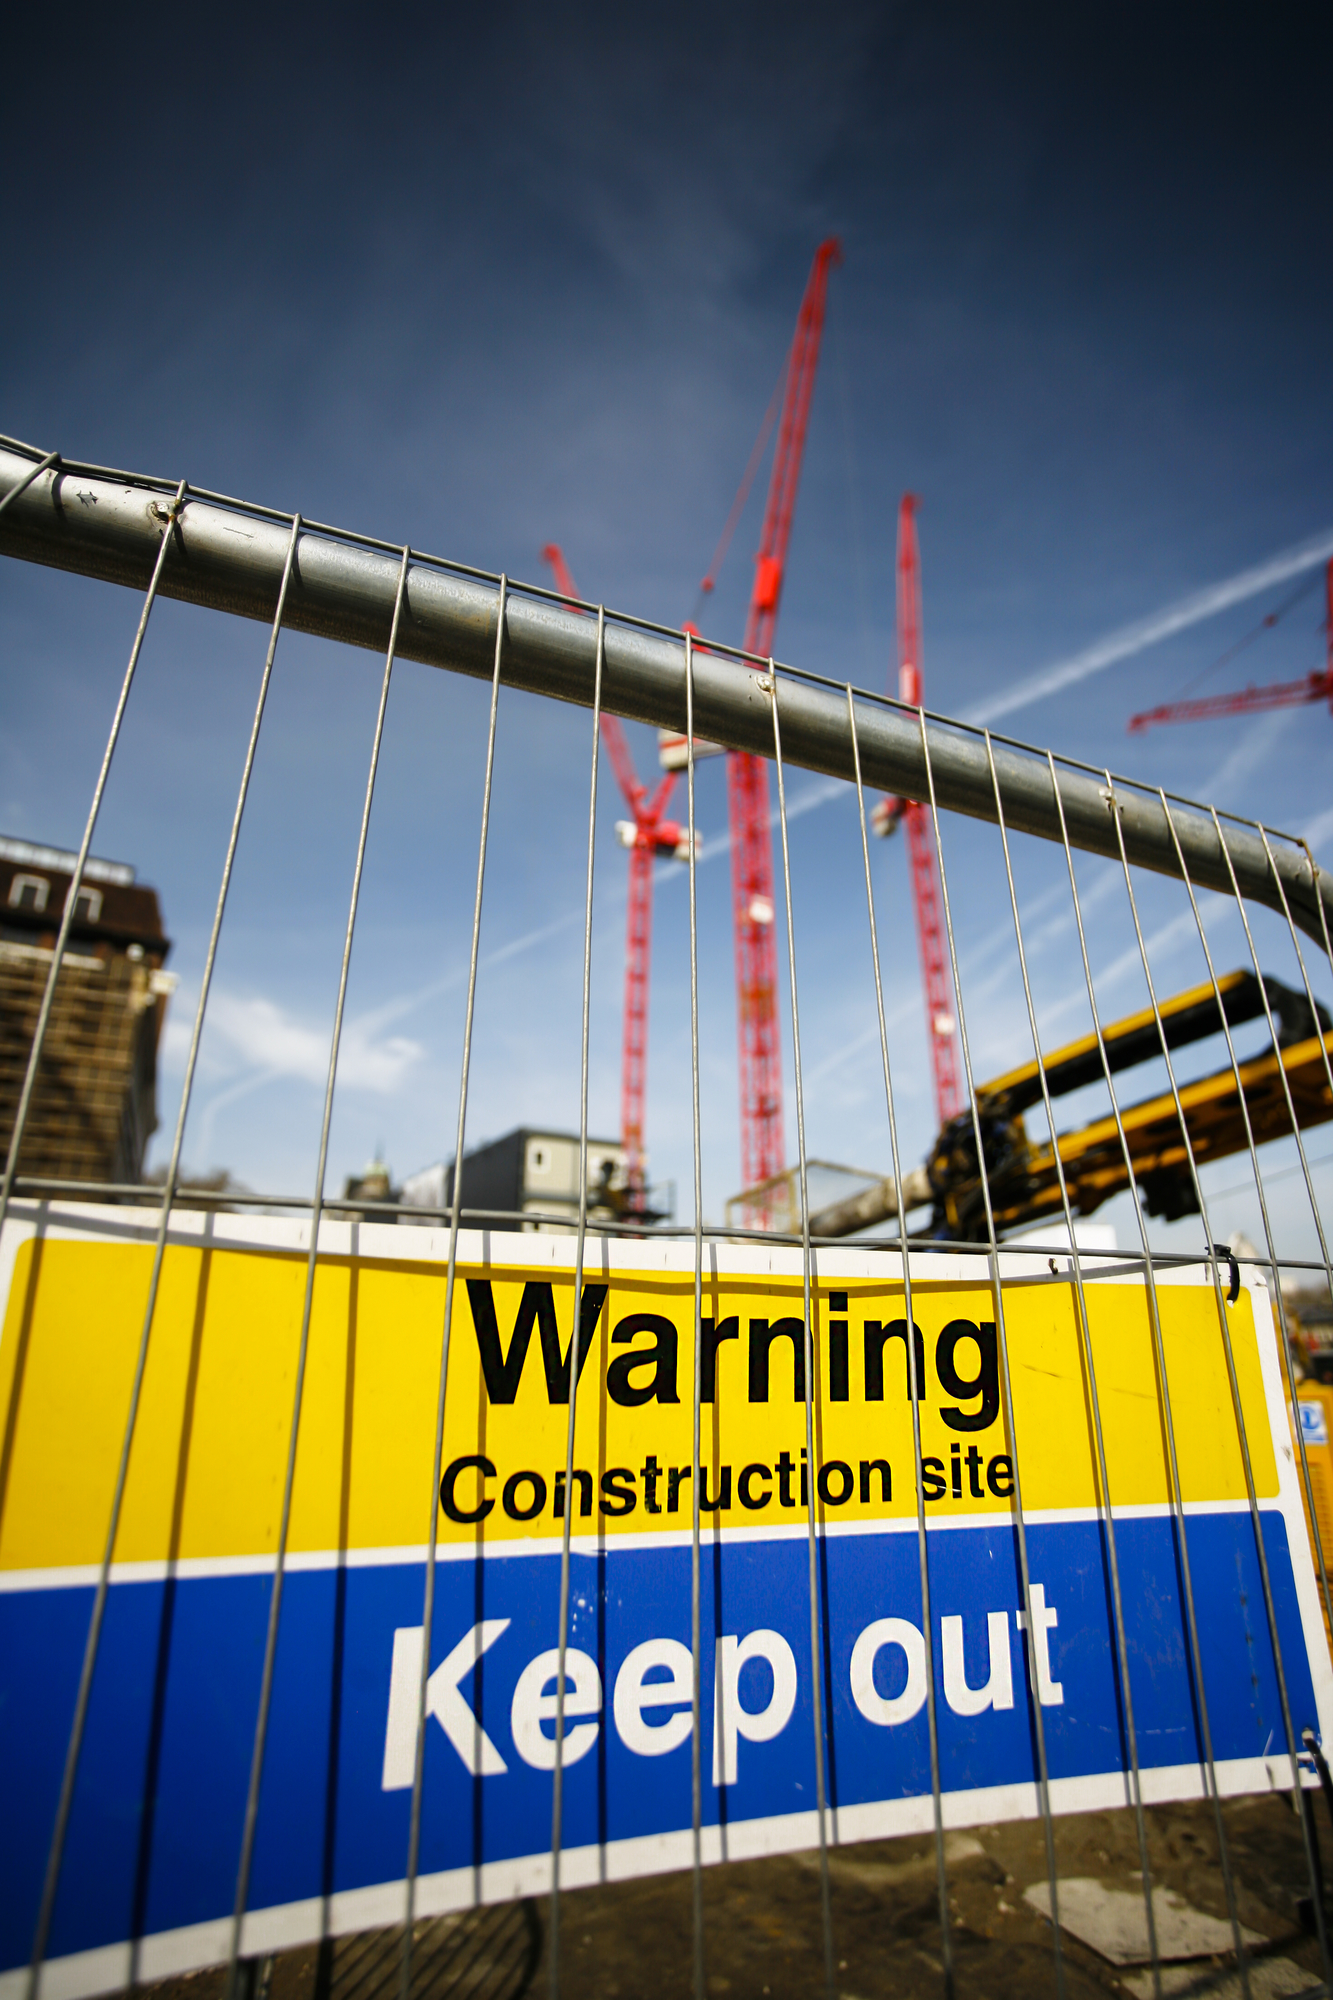 warning sign at construction site - Wireless Camera for